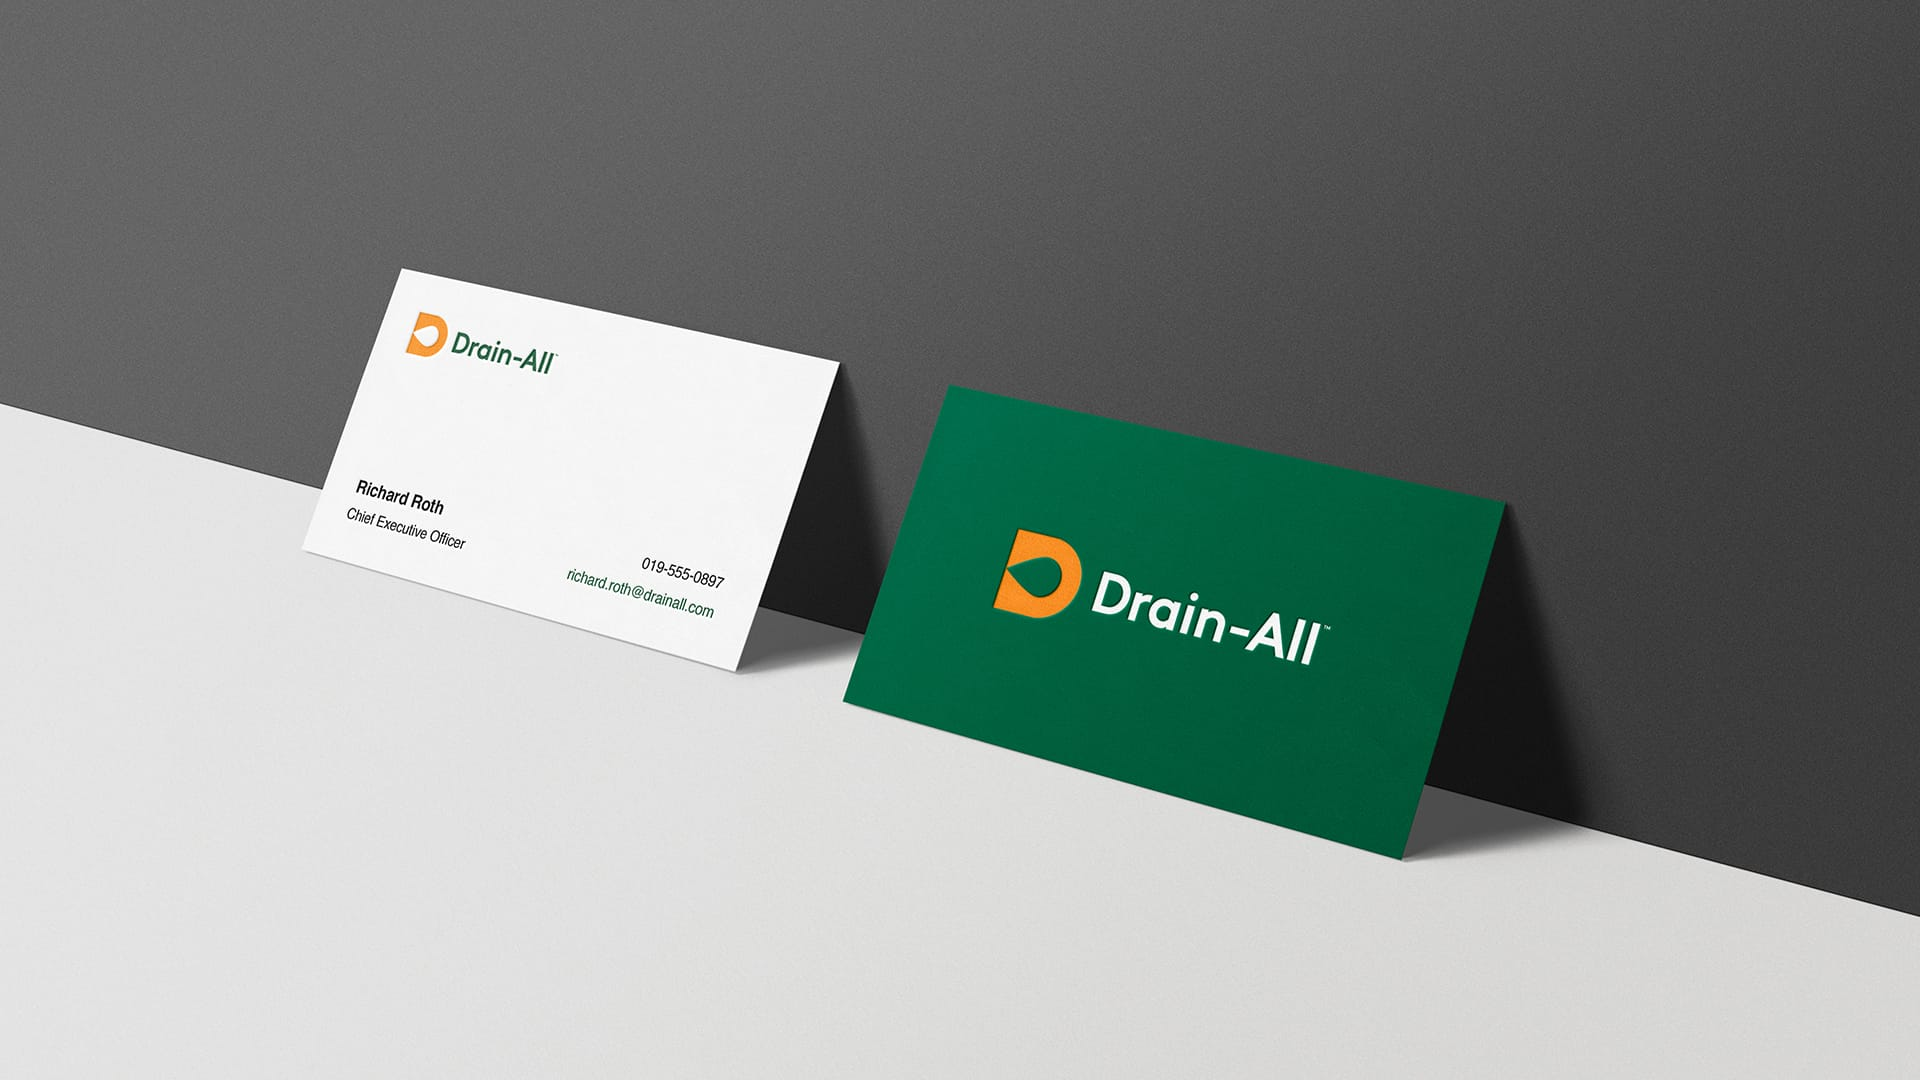 Drain-All - Business Cards